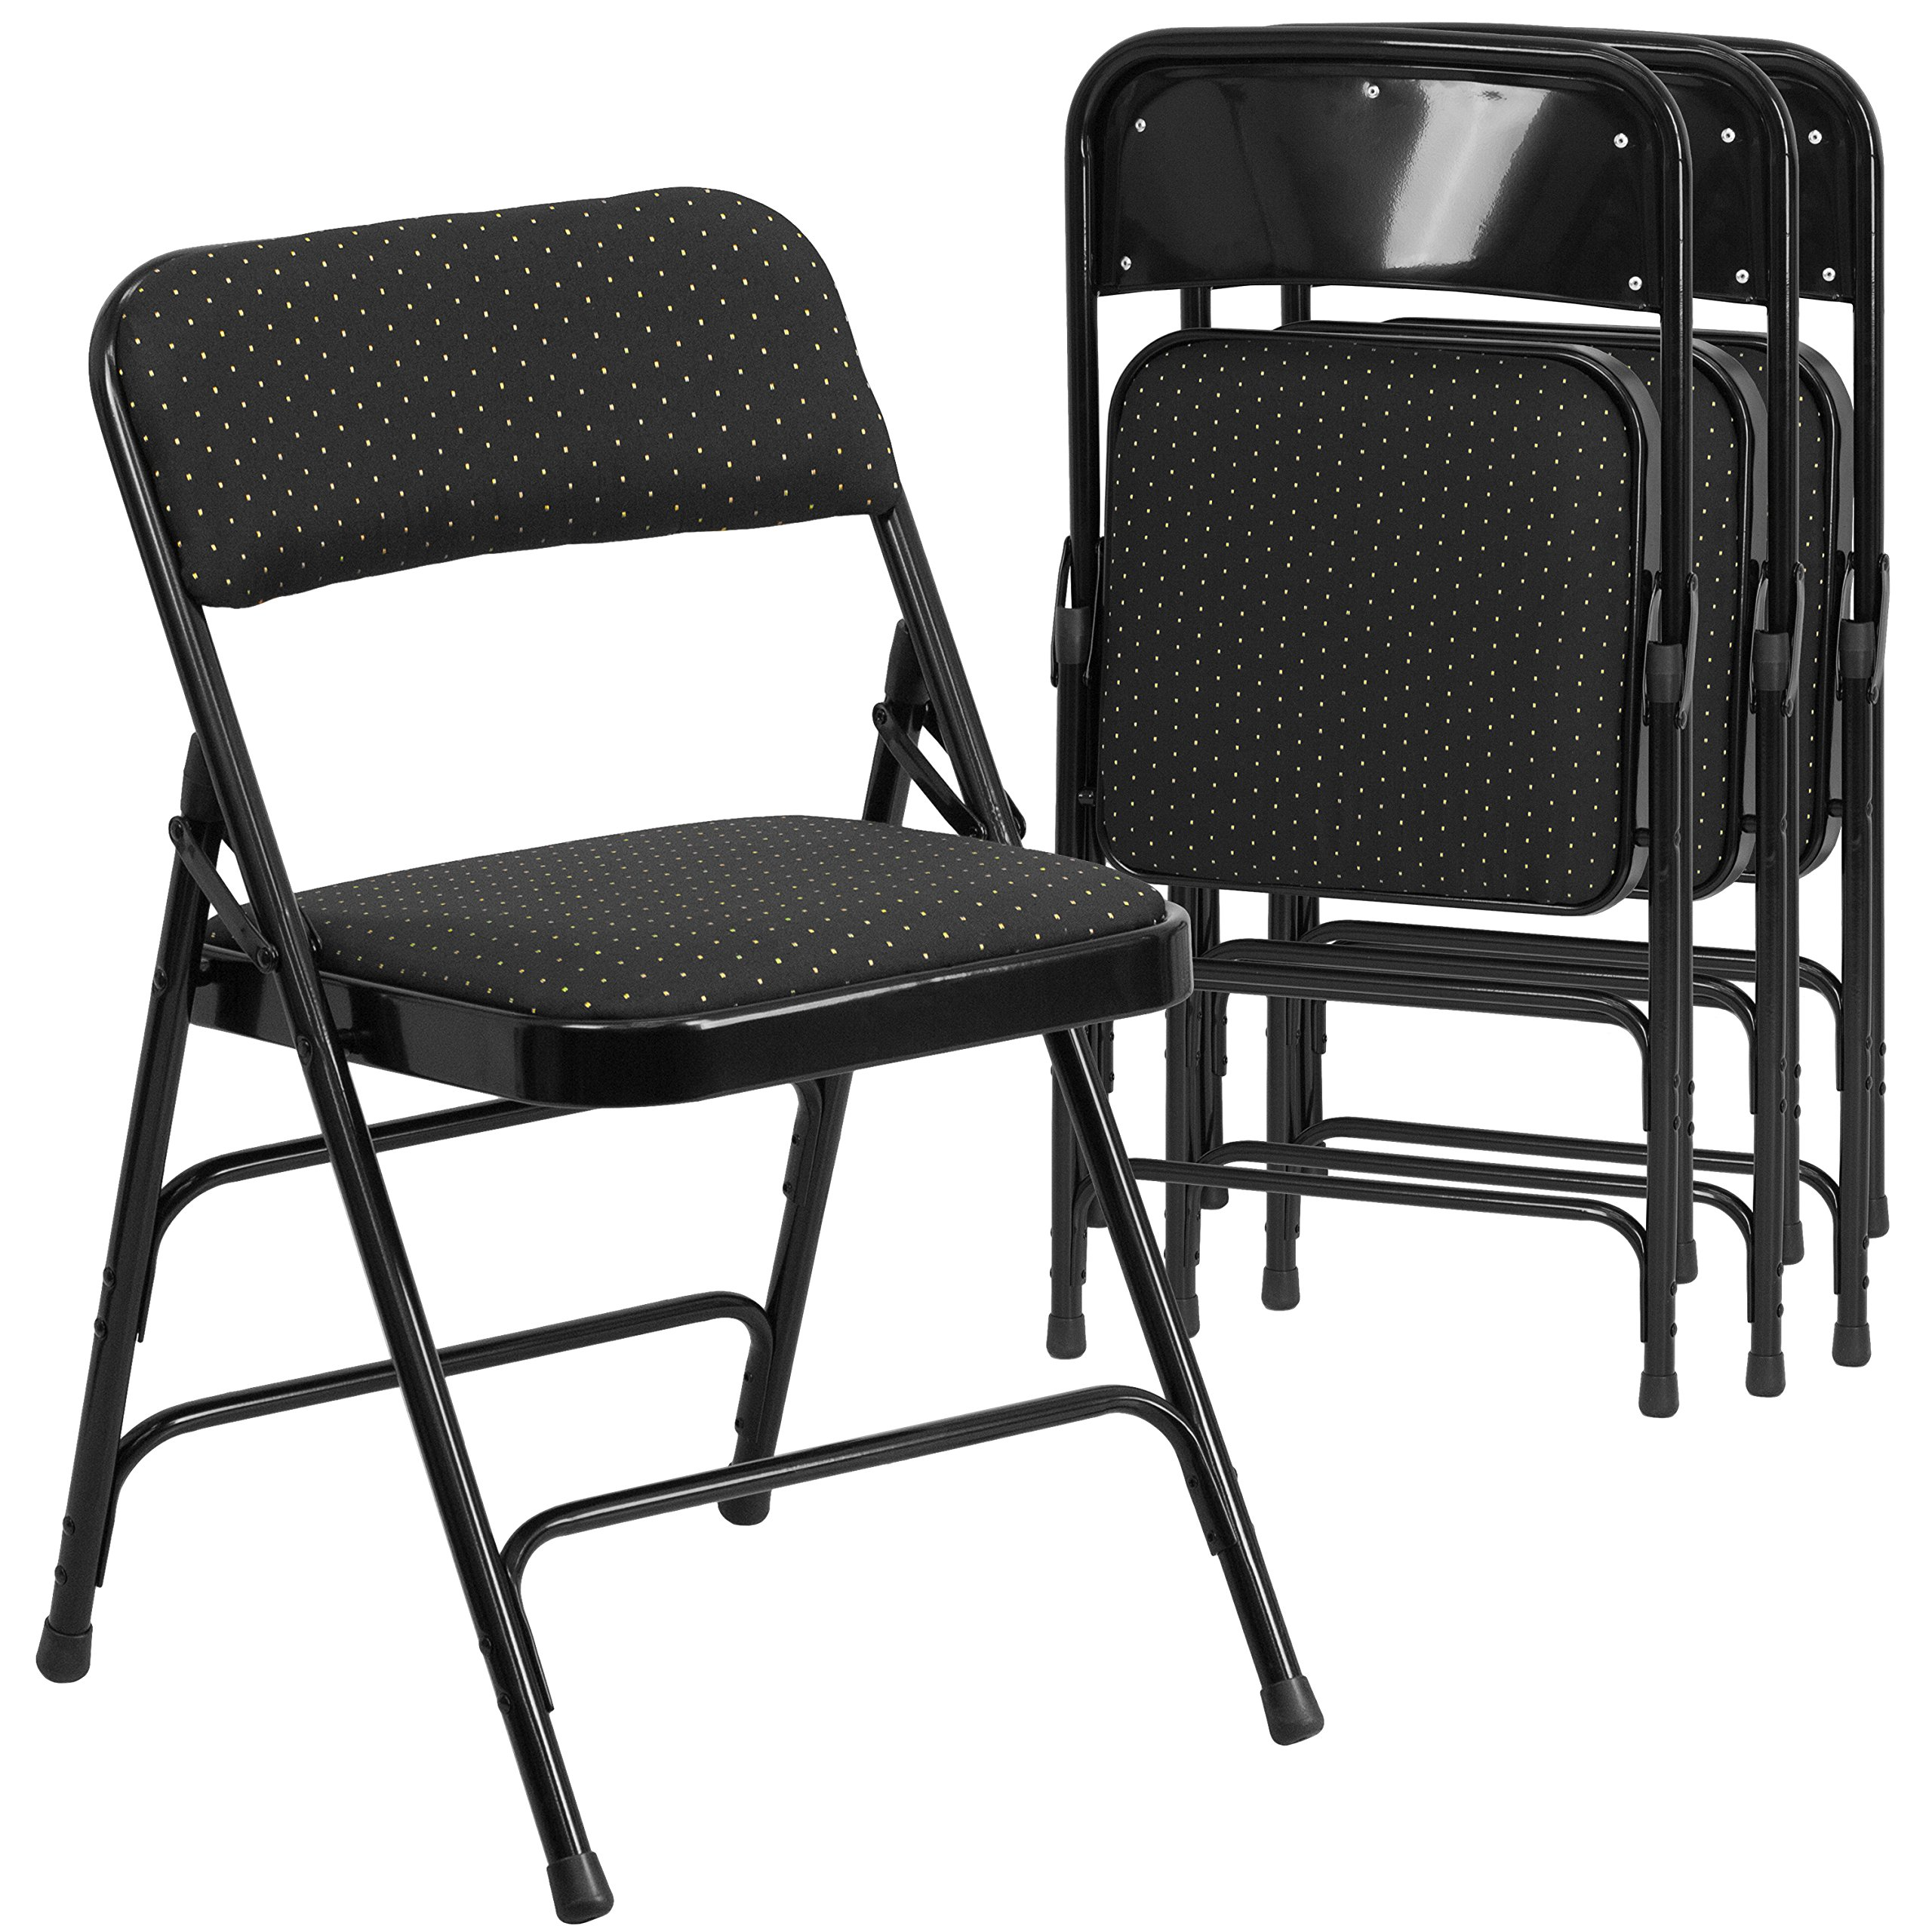 Flash Furniture 4 Pk. HERCULES Series Curved Triple Braced & Double Hinged Black Patterned Fabric Metal Folding Chair by Flash Furniture